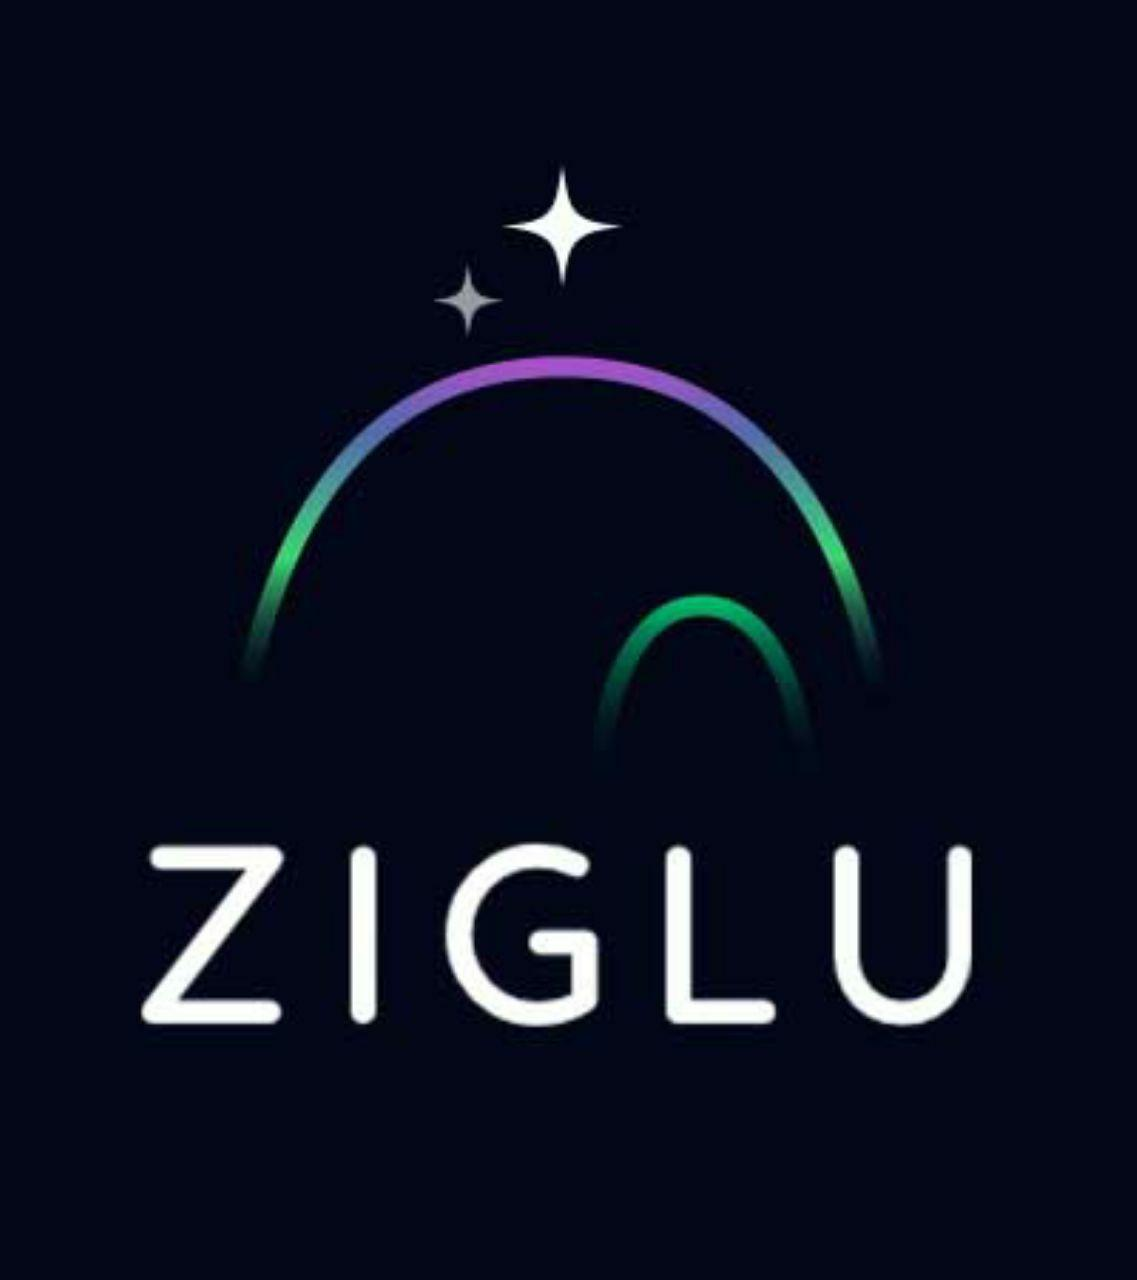 Ziglu launches cryptocurrency platform to provide simple and transparent access to cryptocurrencies